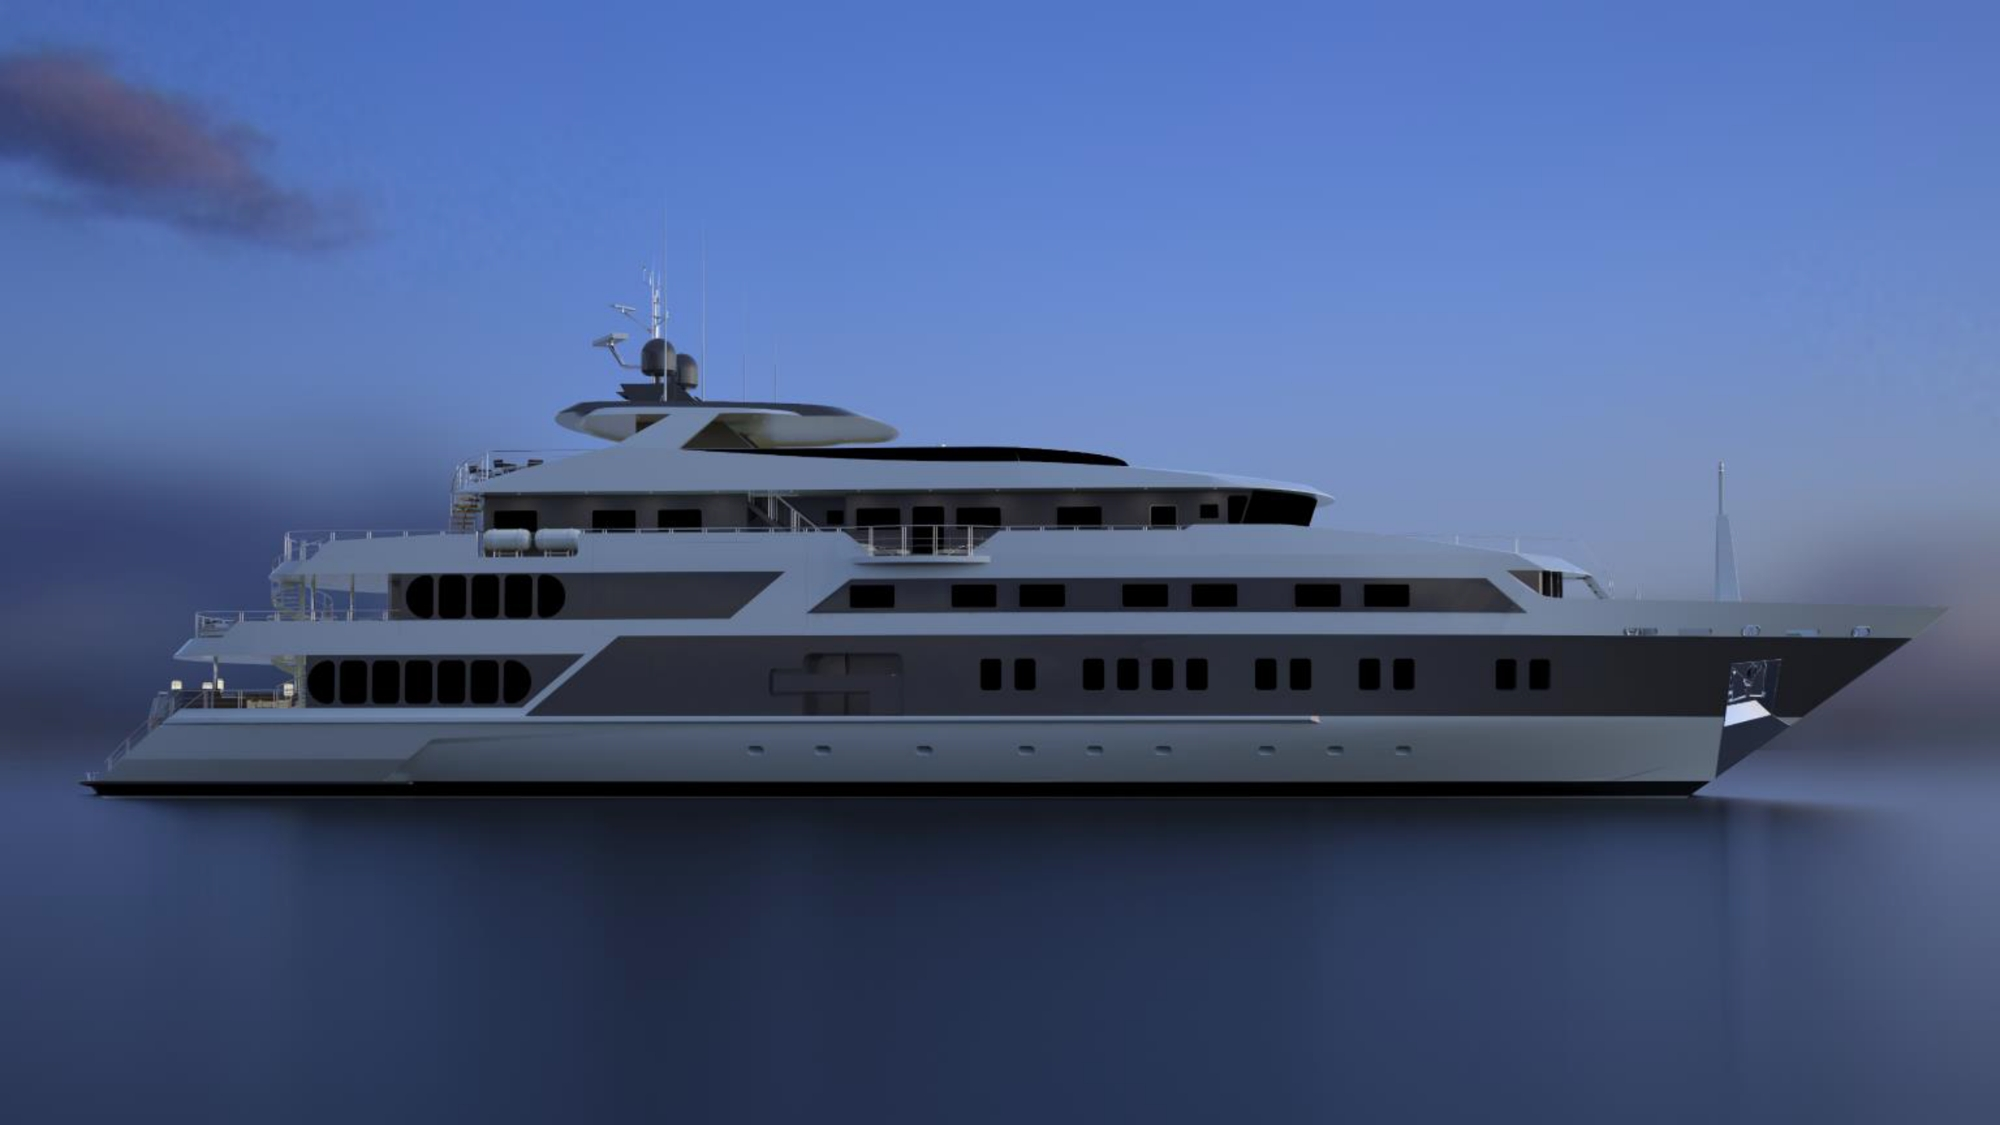 The 72m Yacht SERENITY